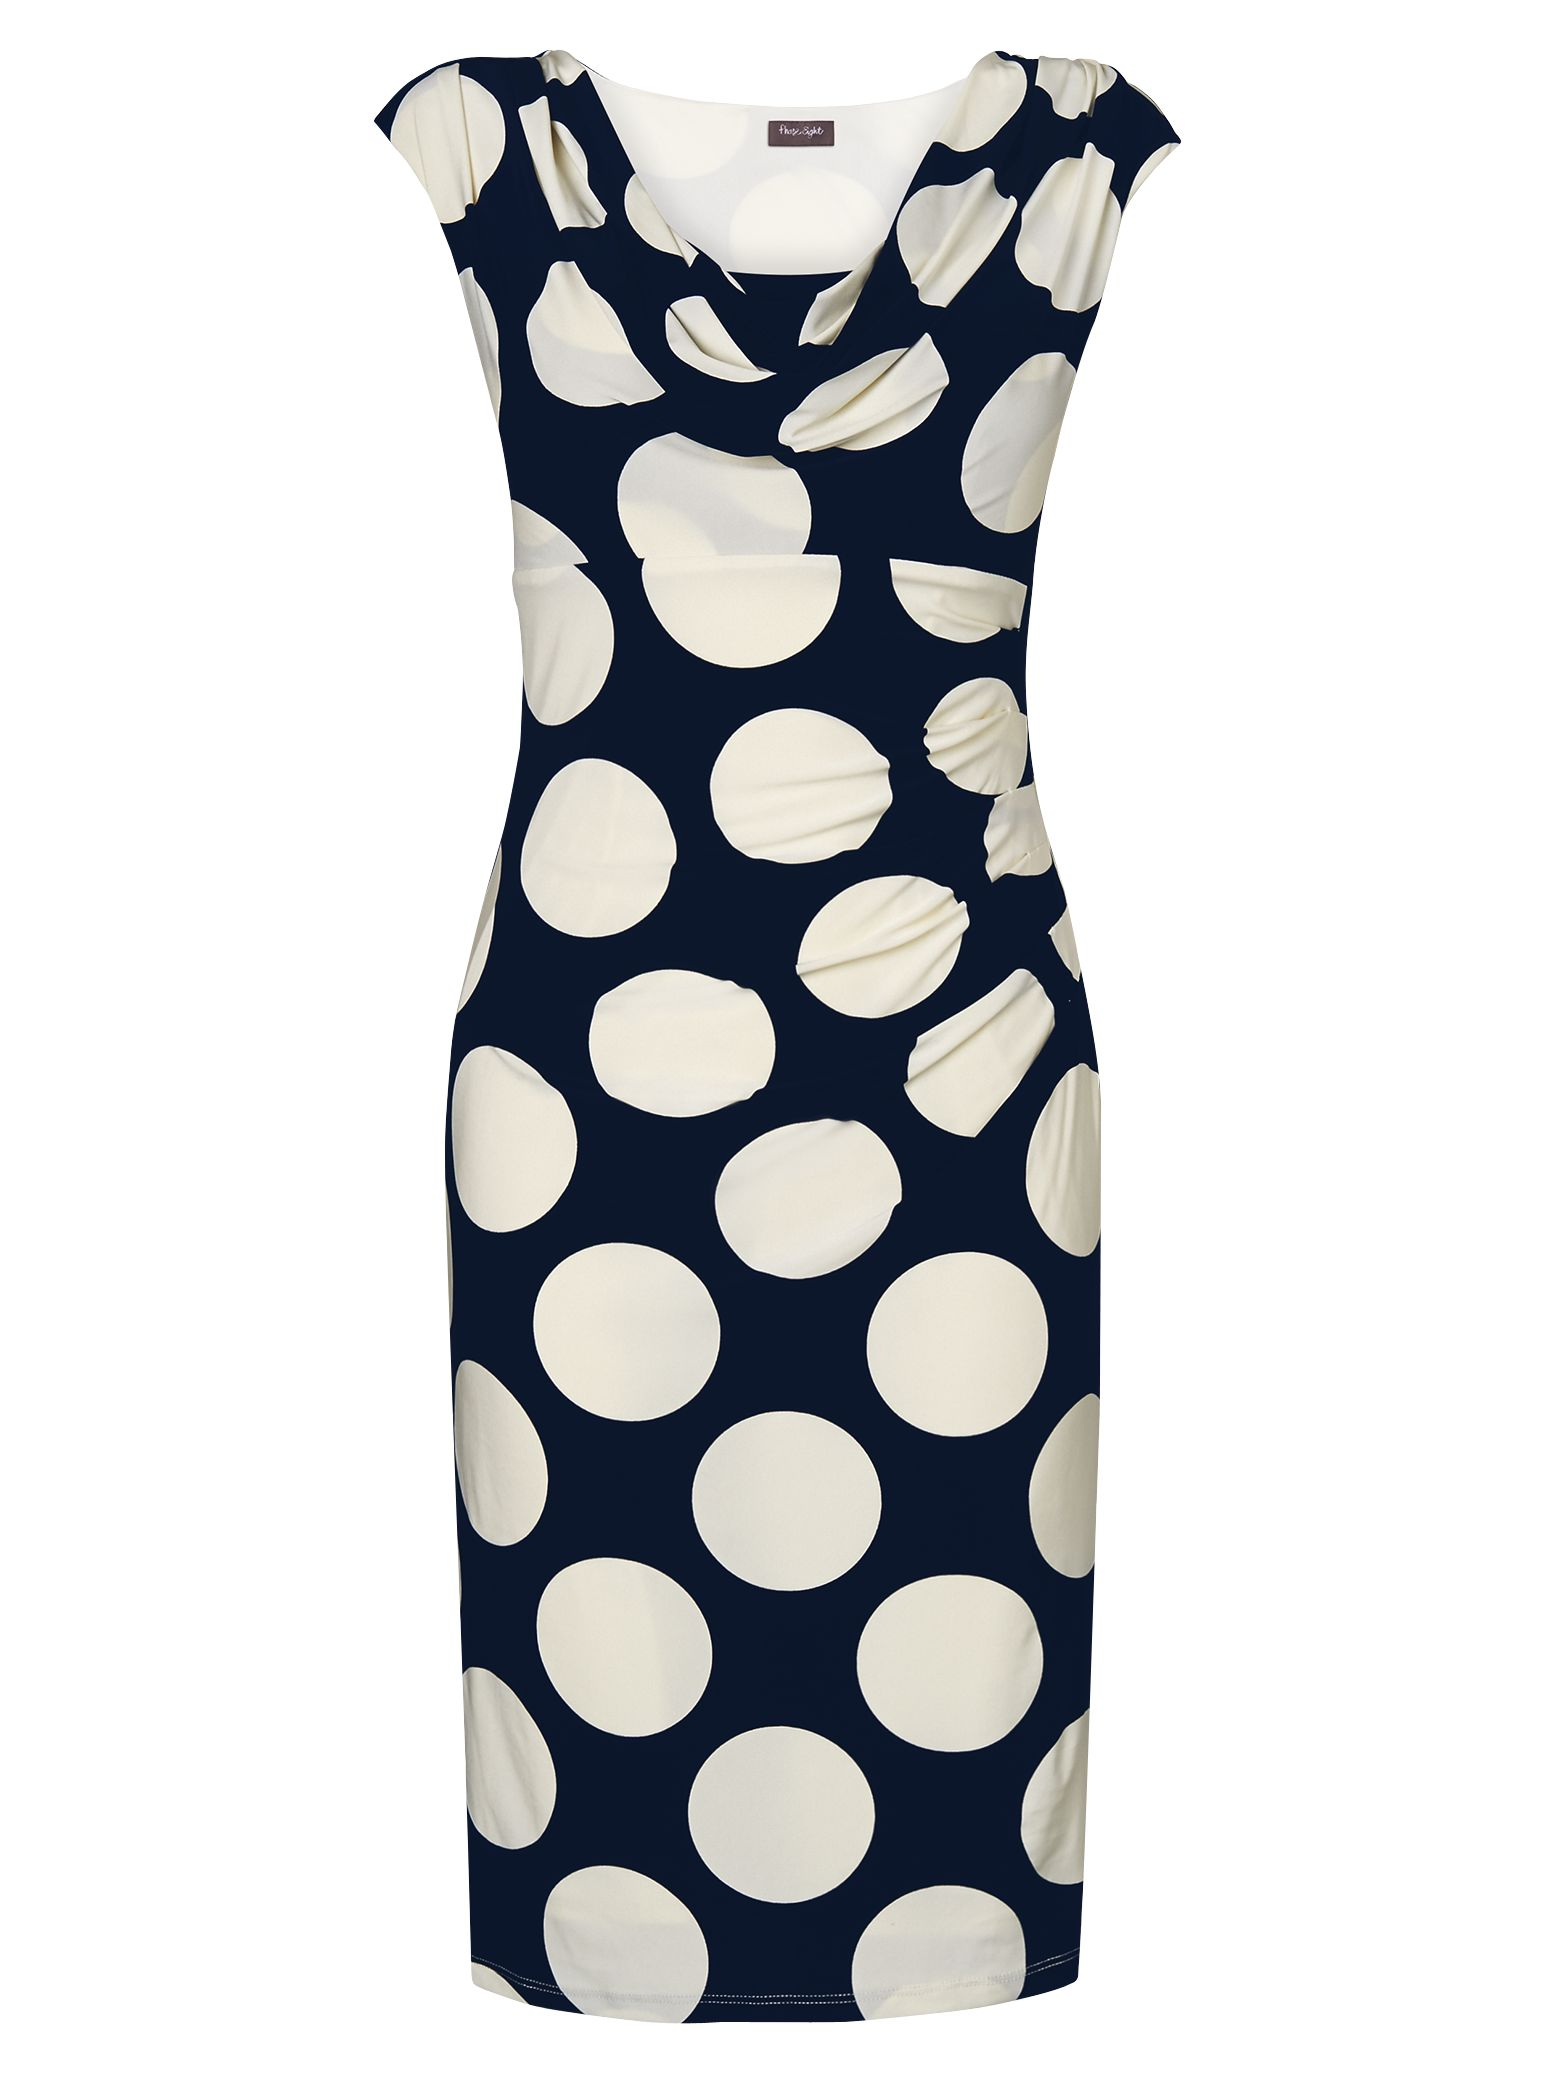 phase eight albo spot dress navy/ivory, phase, eight, albo, spot, dress, navy/ivory, phase eight, 12|10, women, womens dresses, special offers, womenswear offers, latest reductions, womens dresses offers, gifts, wedding, wedding clothing, female guests, 20% off full price phase eight, fashion magazine, brands l-z, inactive womenswear, 1865342